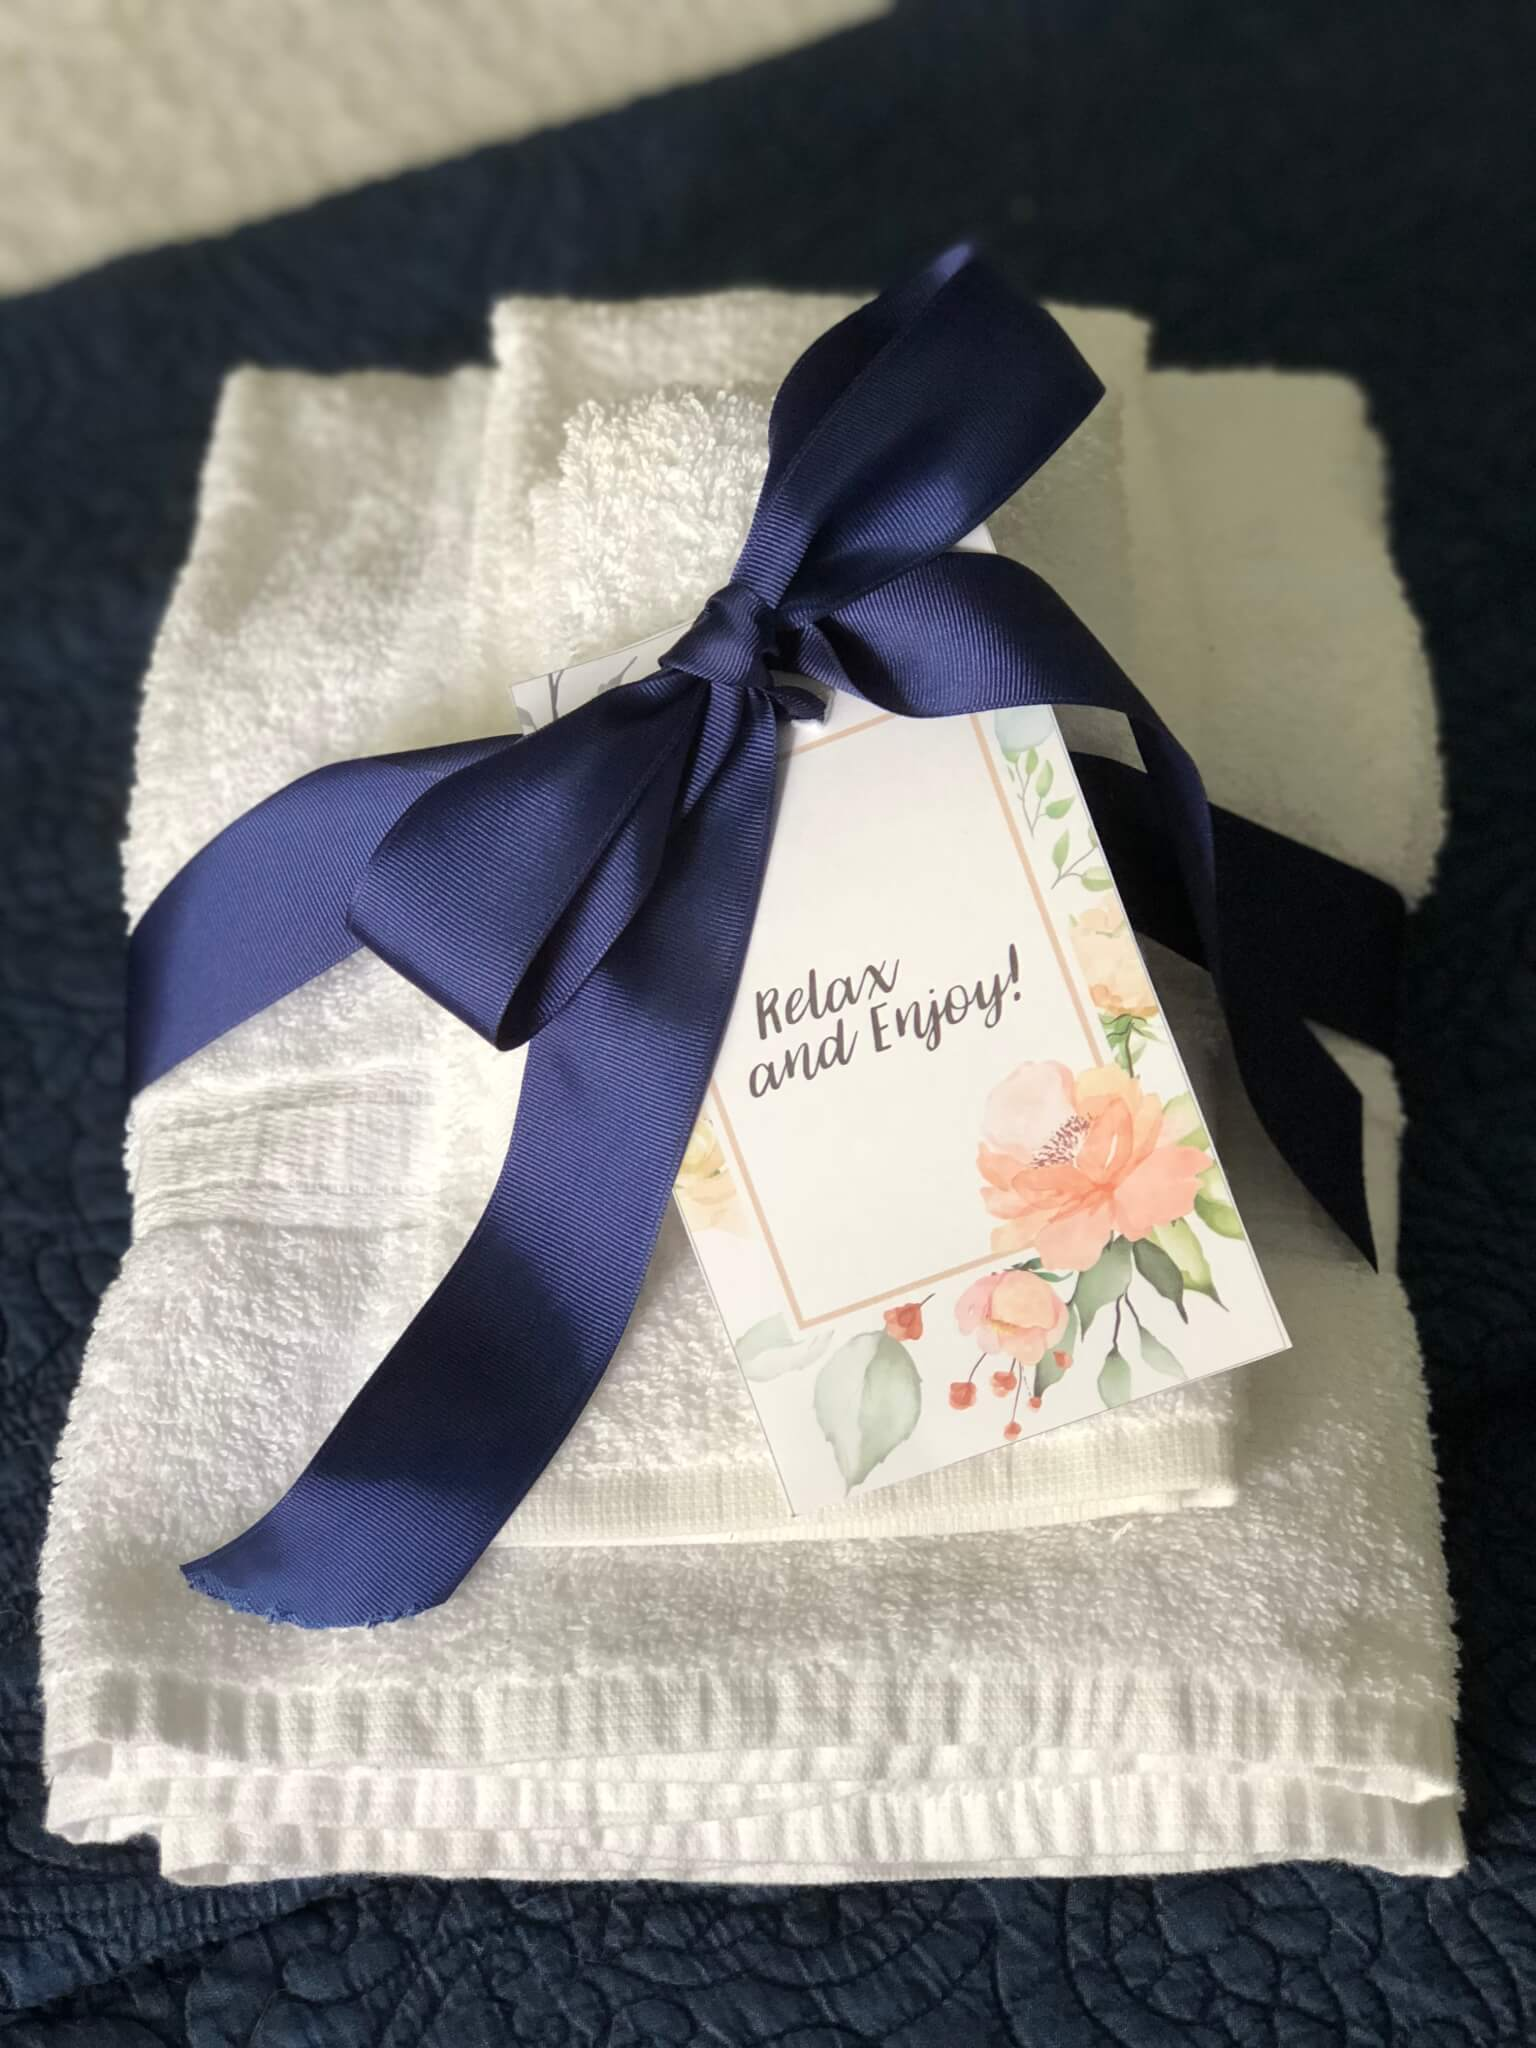 Guest Room Towels with free printable note.